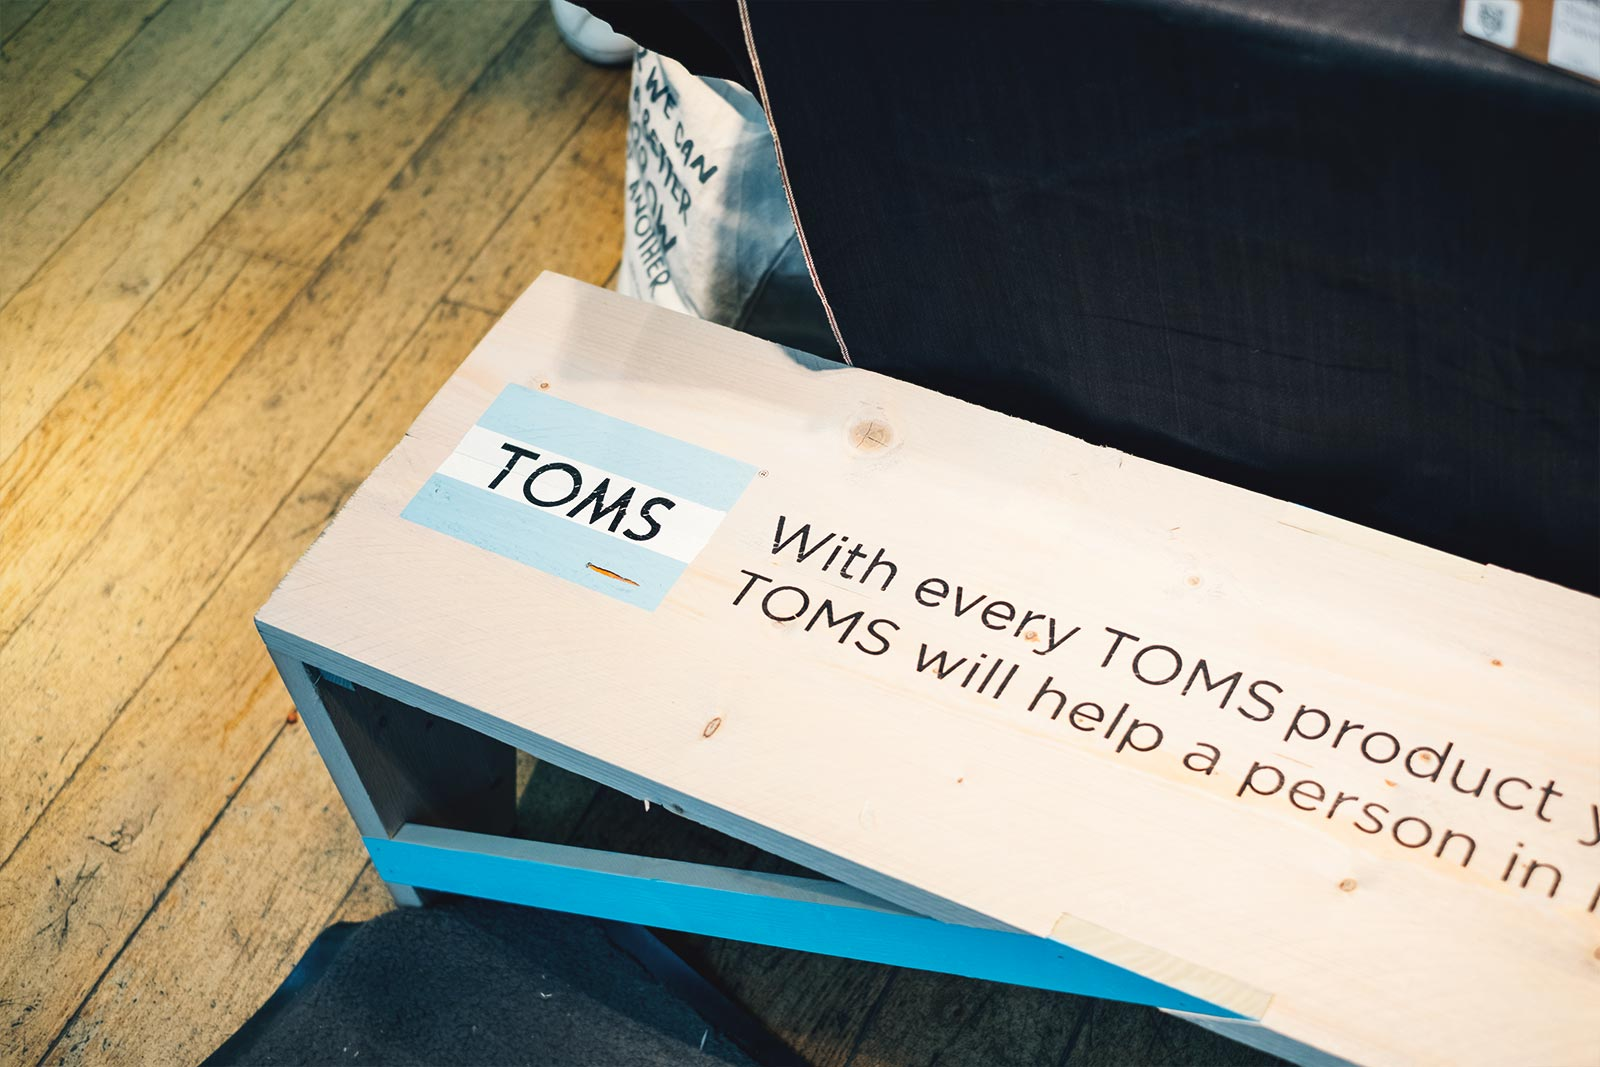 Toms Chaussures custom One For One